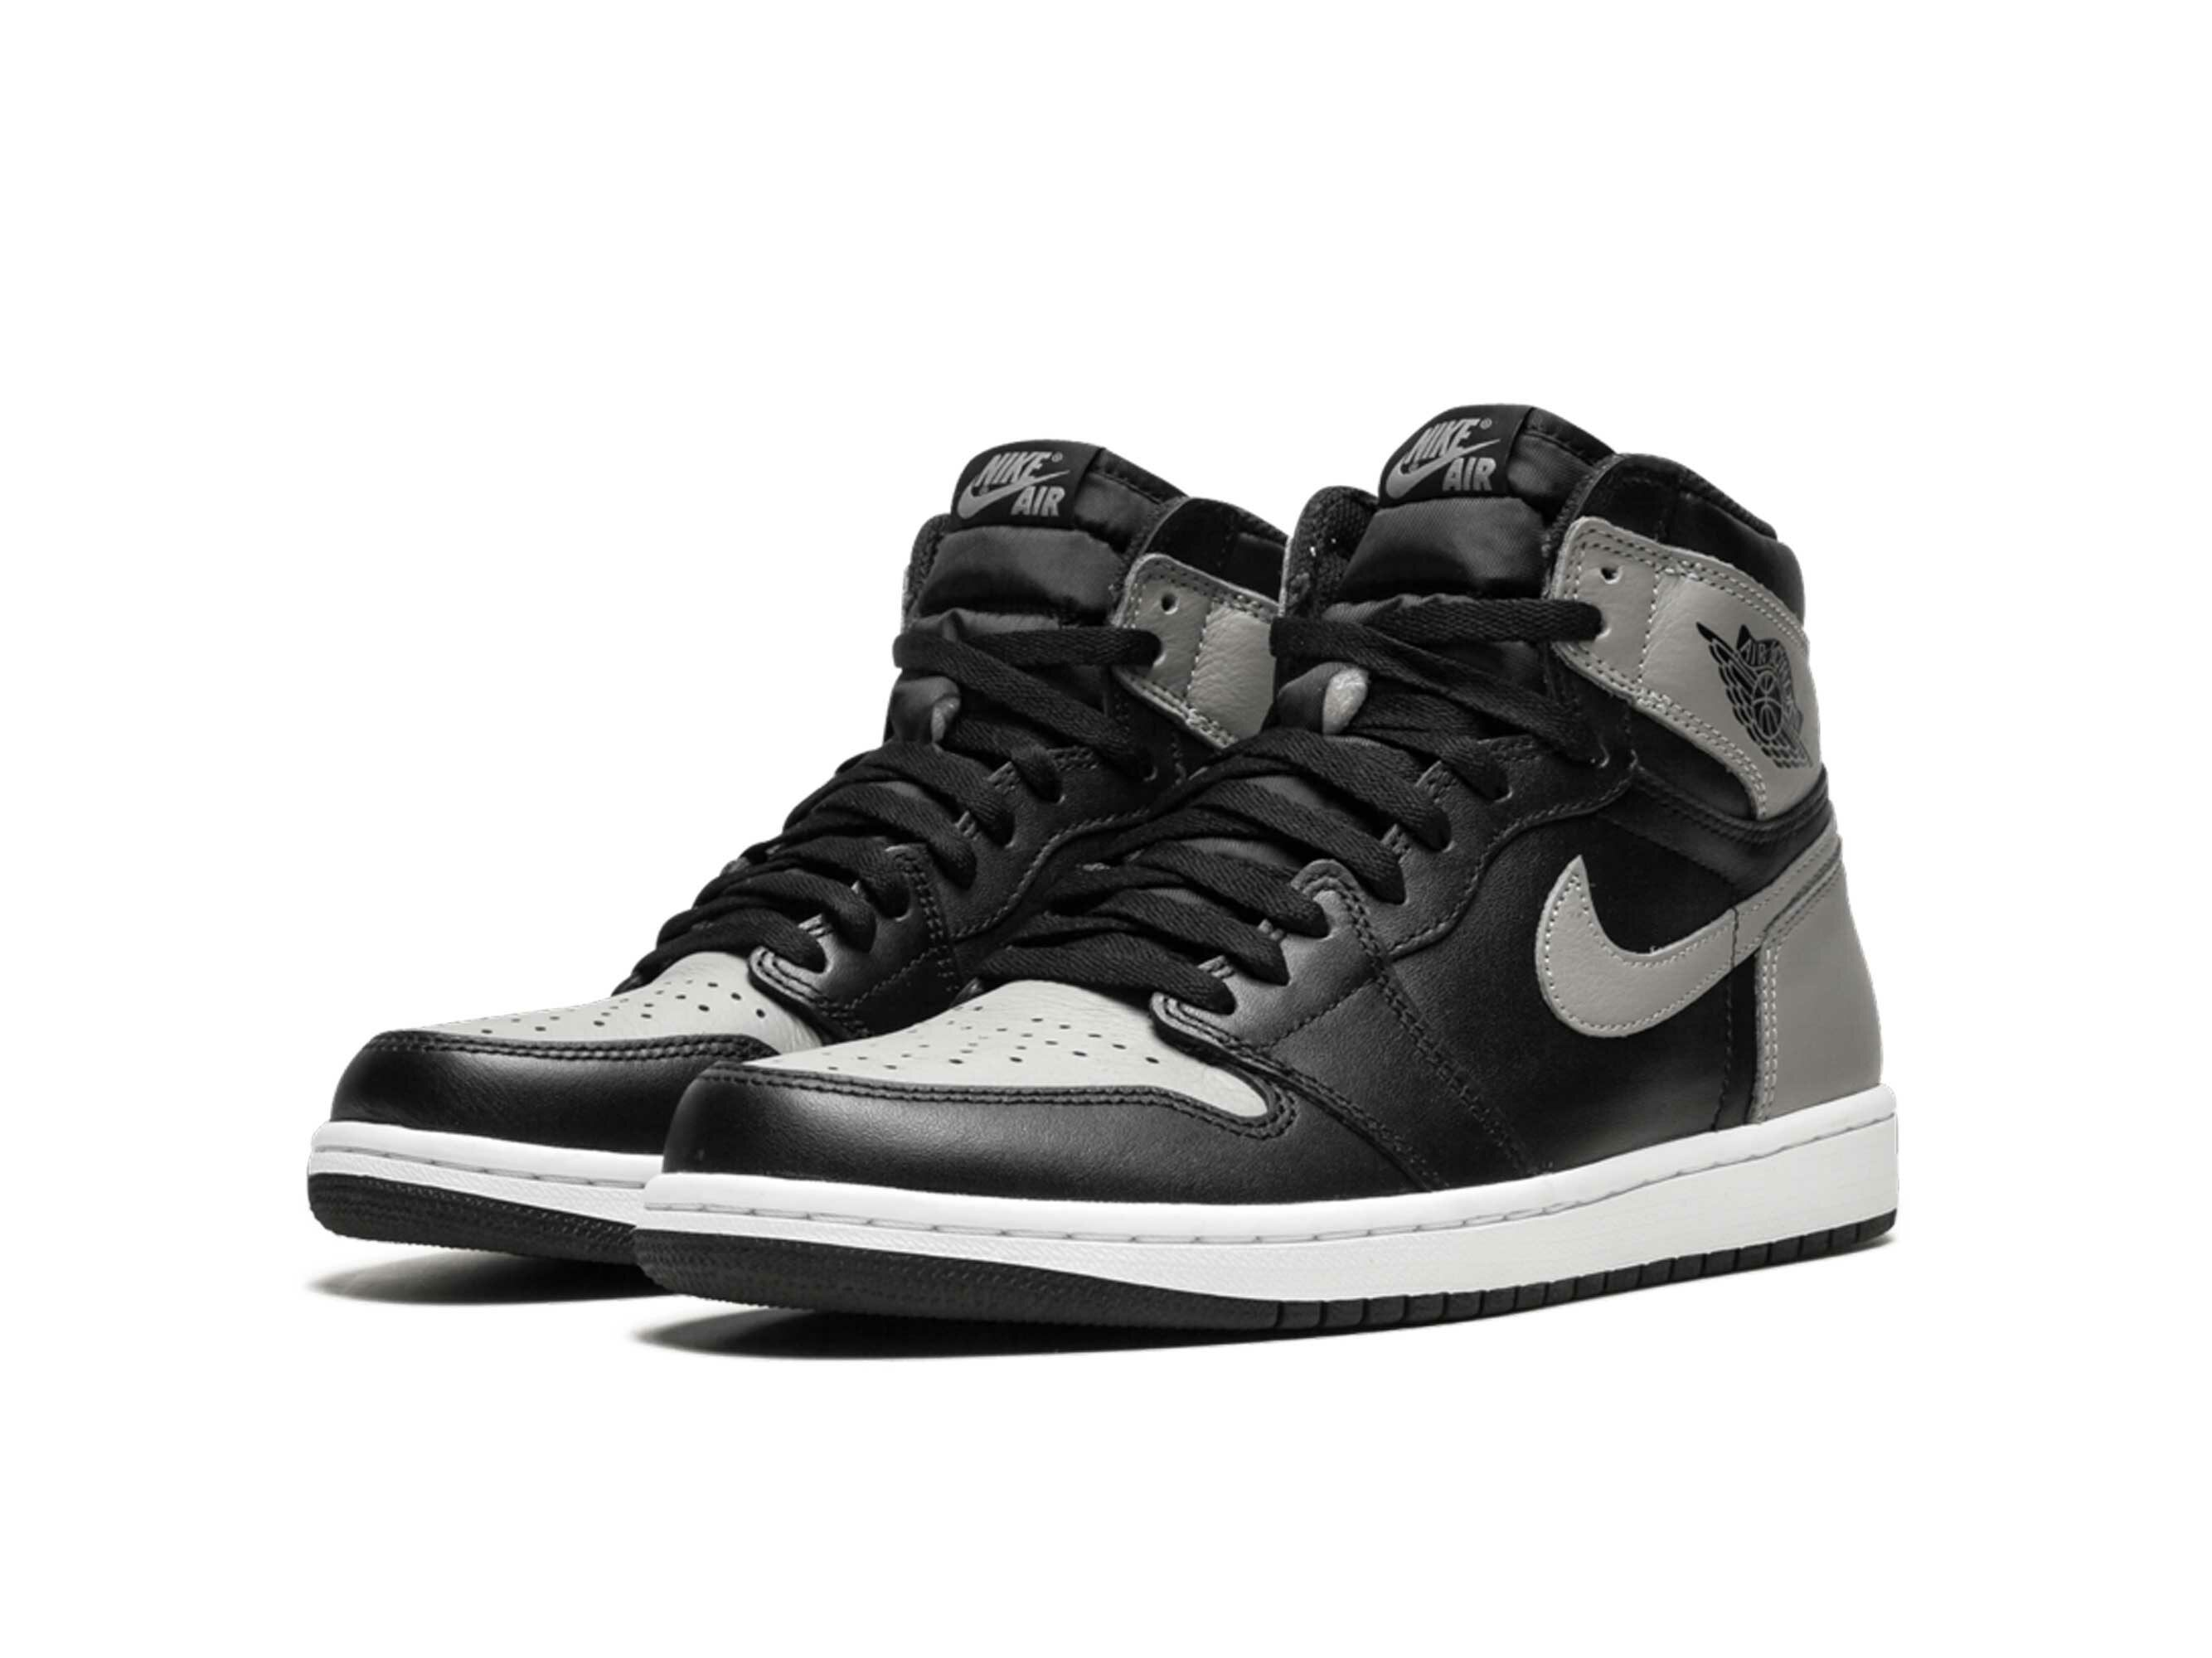 nike air Jordan 1 retro high og shadow black grey 555088_013 купить